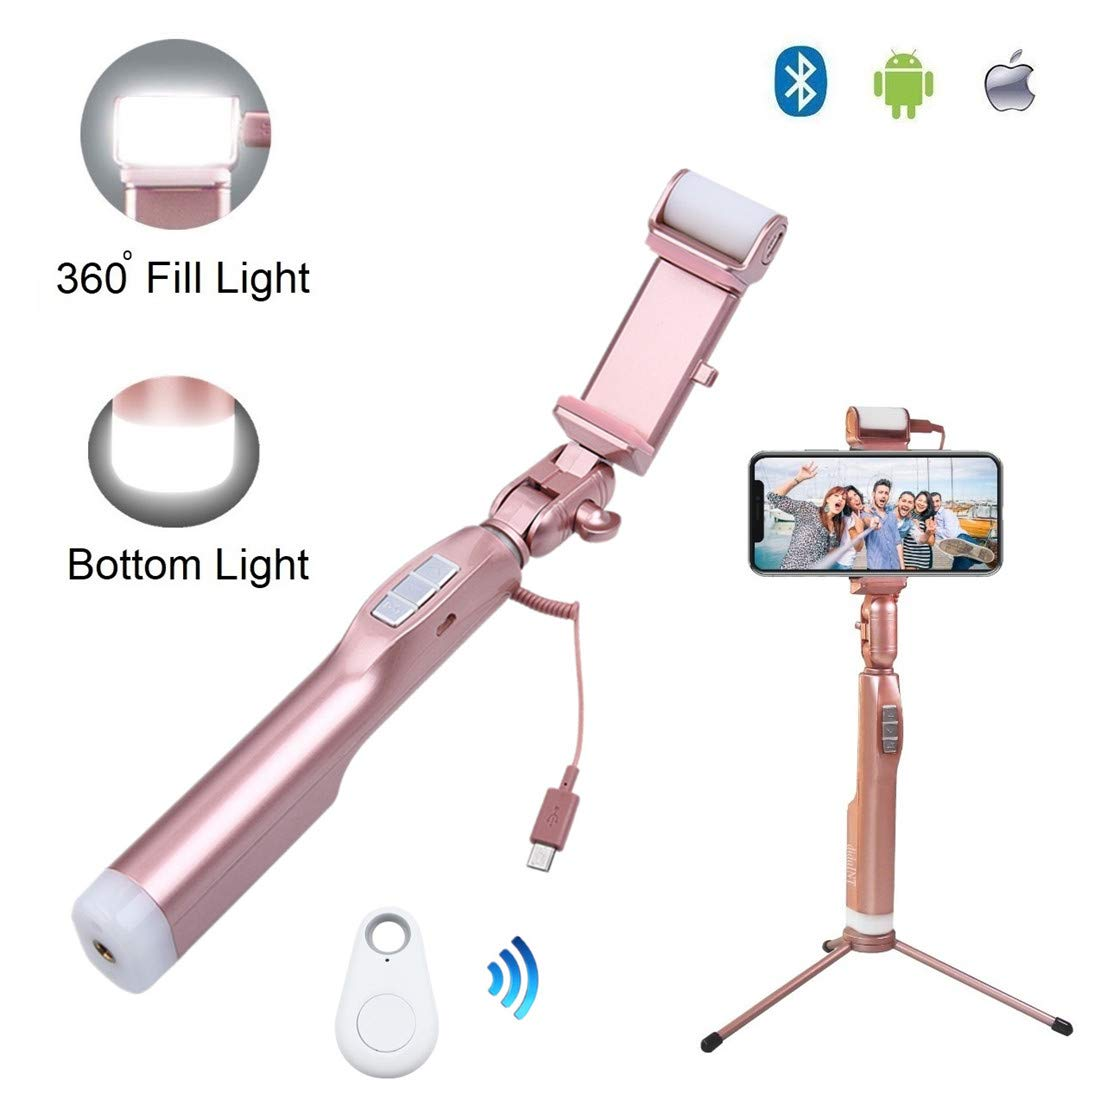 didaINT Bluetooth Wireless Remote Selfie Stick, Aluminum Alloy Metal Tripod with 2 LED Fill Light and Mirror, 360° Rotation Phone Holder for iPhone X/8/7/7Plus/6Plus/6s, Galaxy S9/S8/S8Plus/S7, More